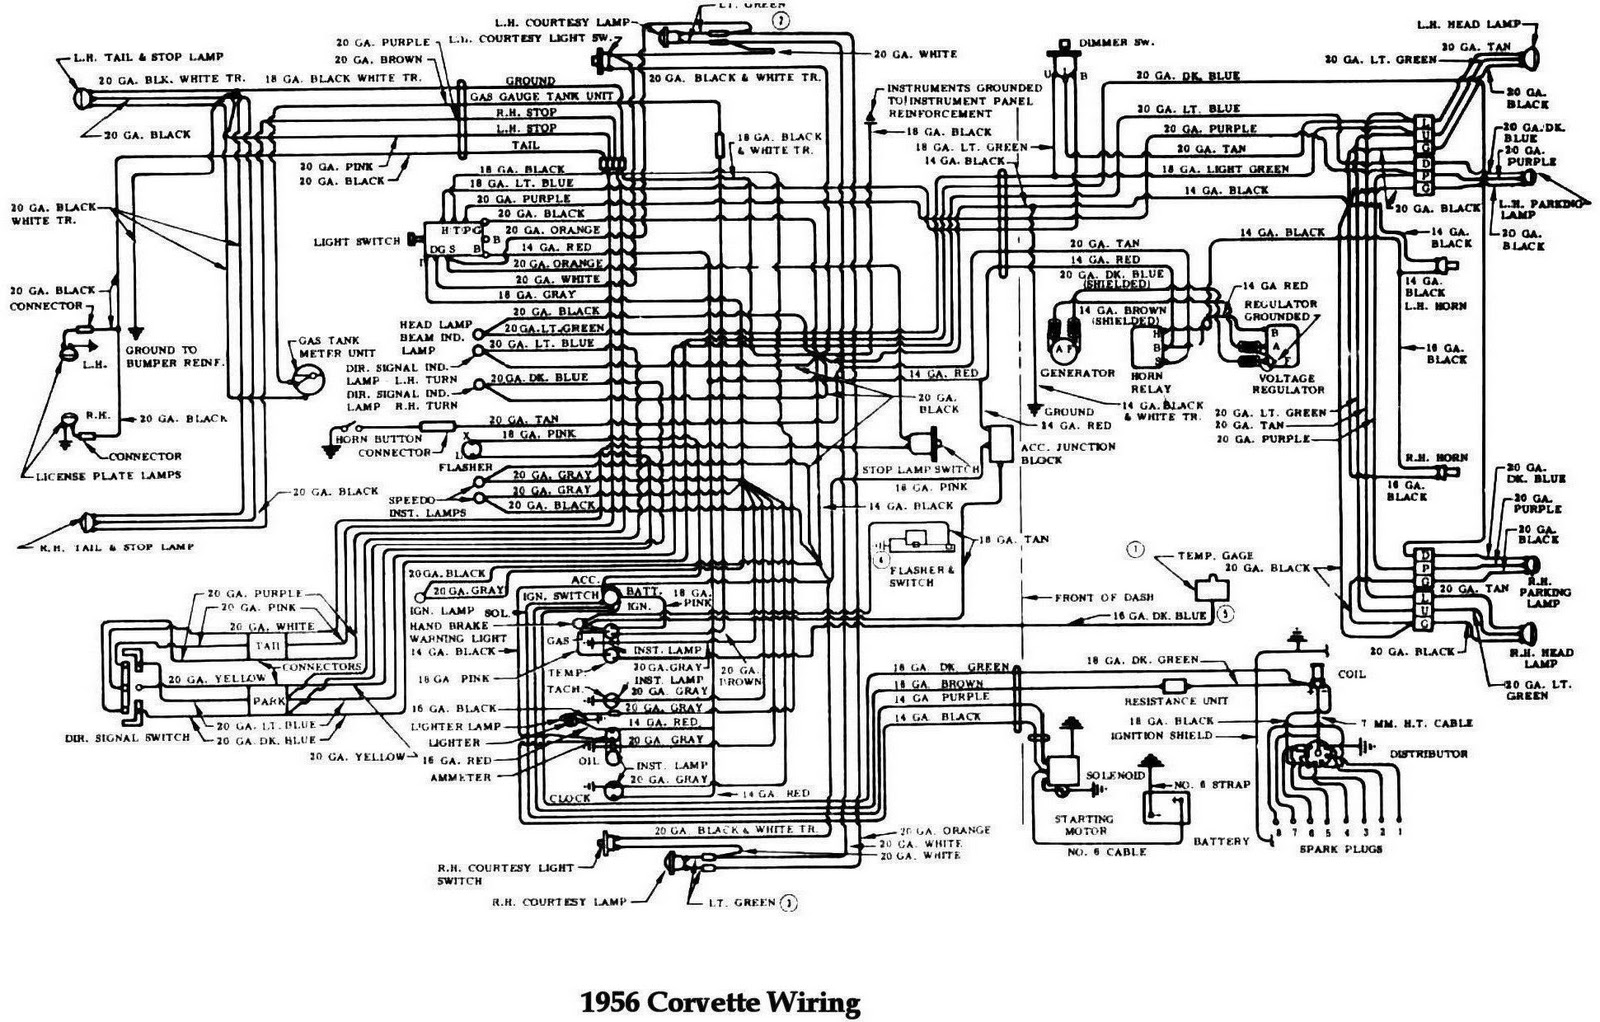 1956+Chevrolet+Corvette+Wiring+Diagram june 2011 all about wiring diagrams,1956 Chevrolet Wiring Schematic